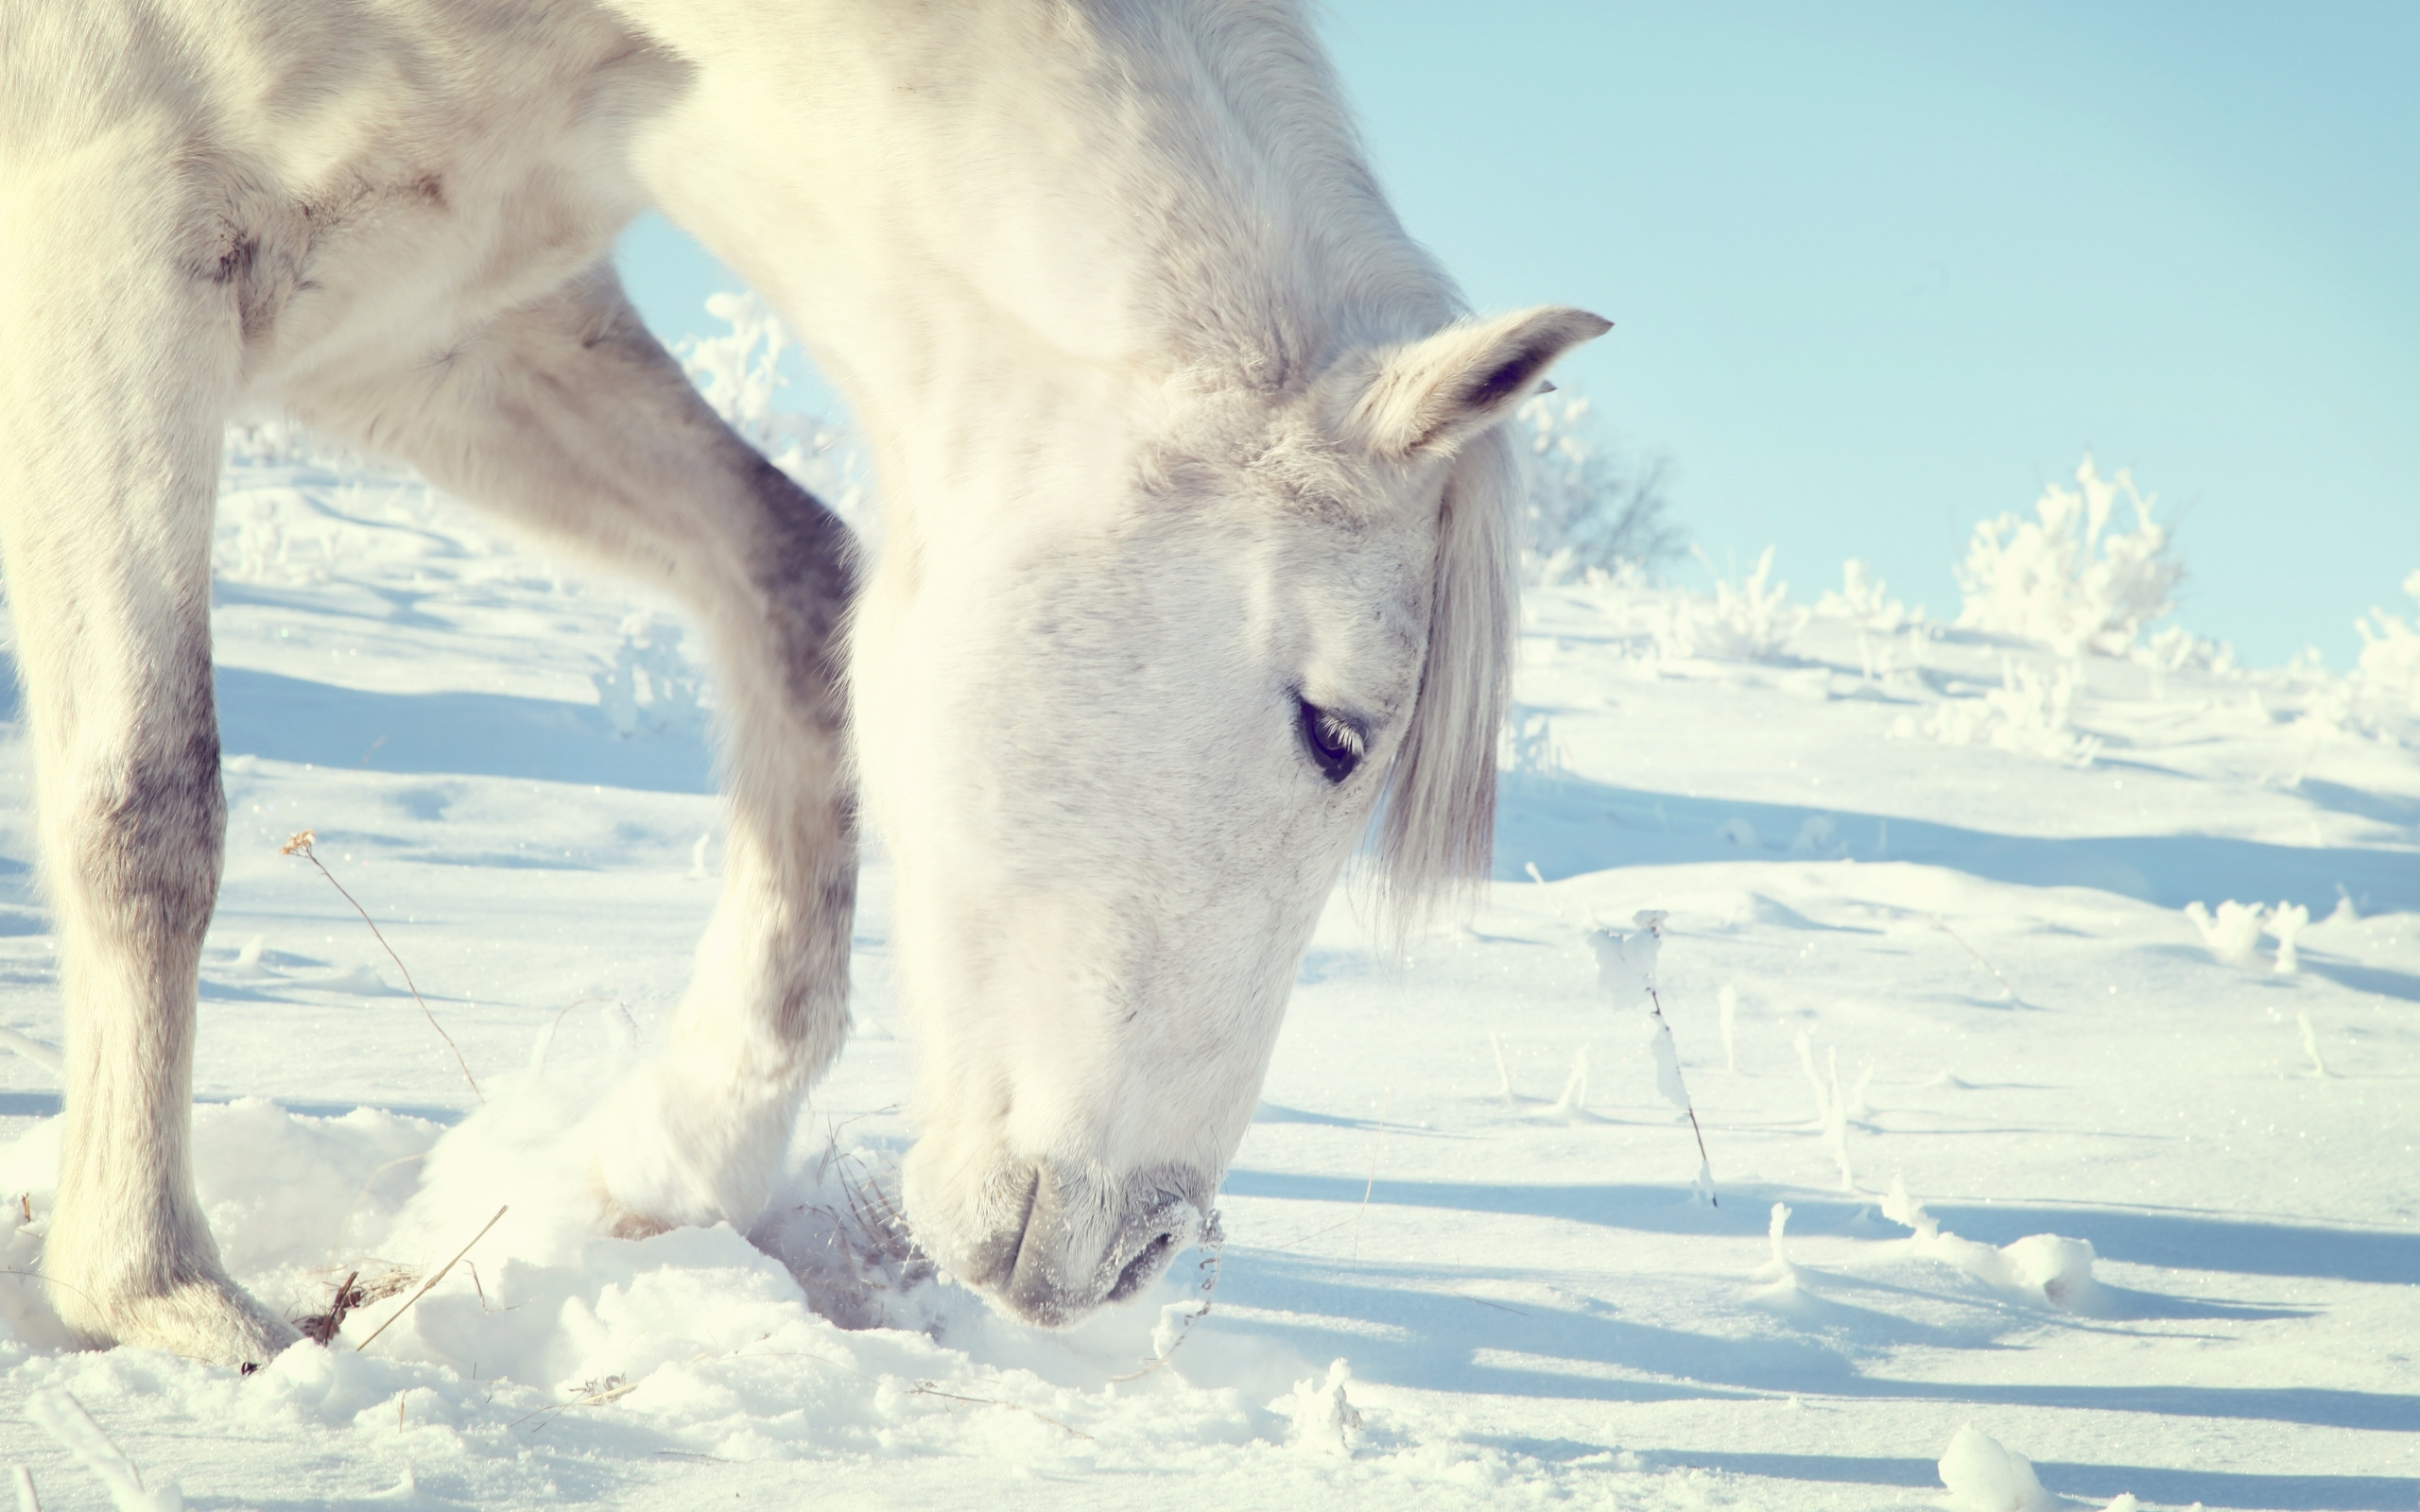 47650 download wallpaper Animals, Horses screensavers and pictures for free